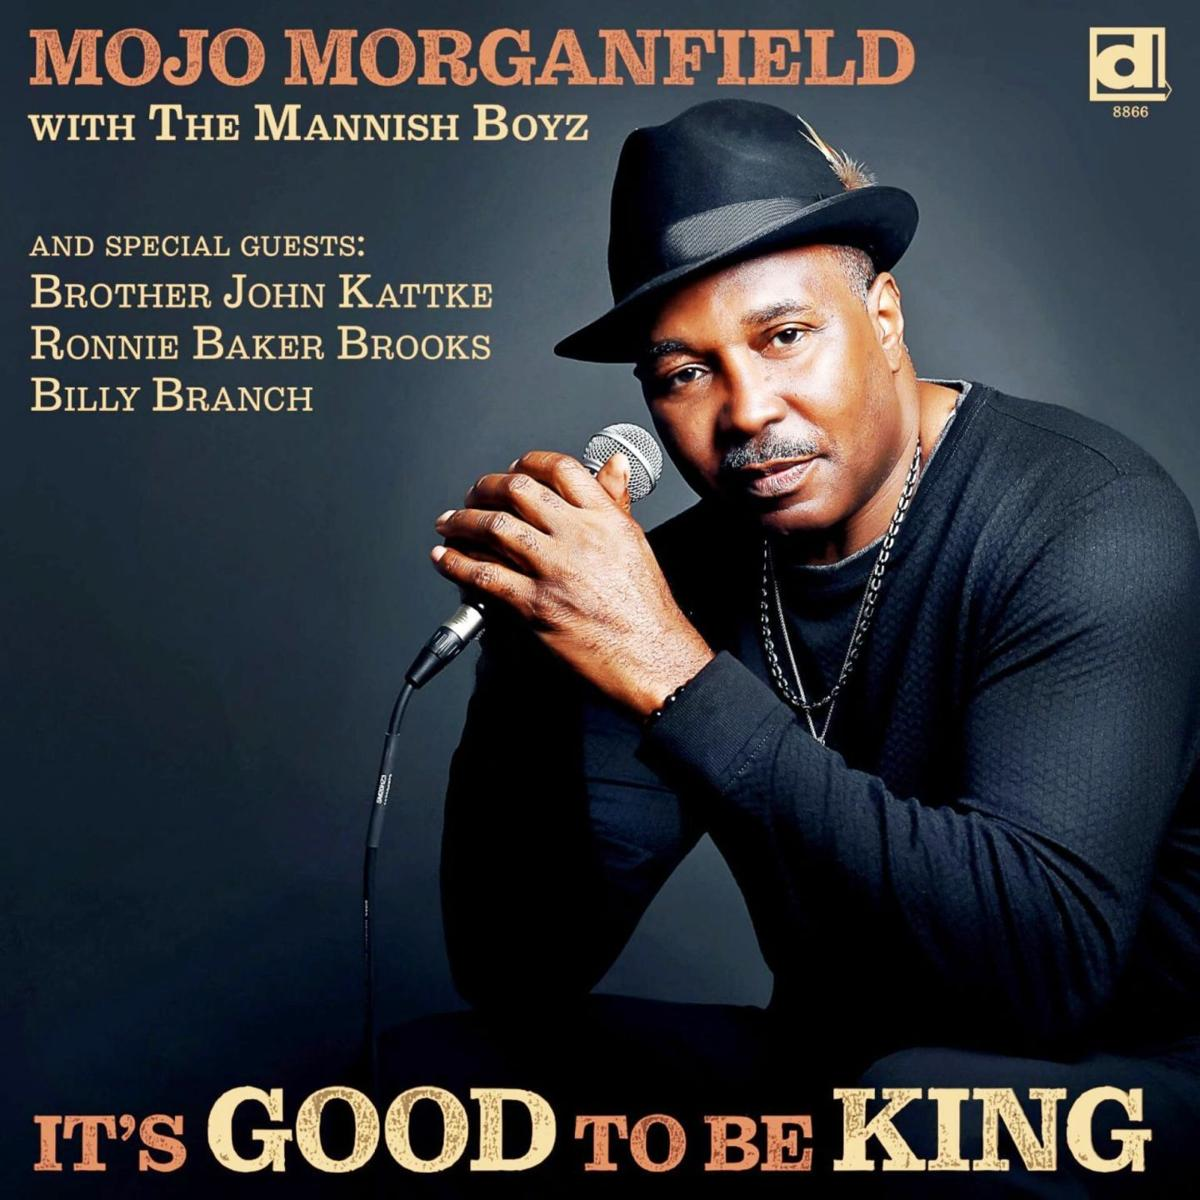 Mojo Morganfield